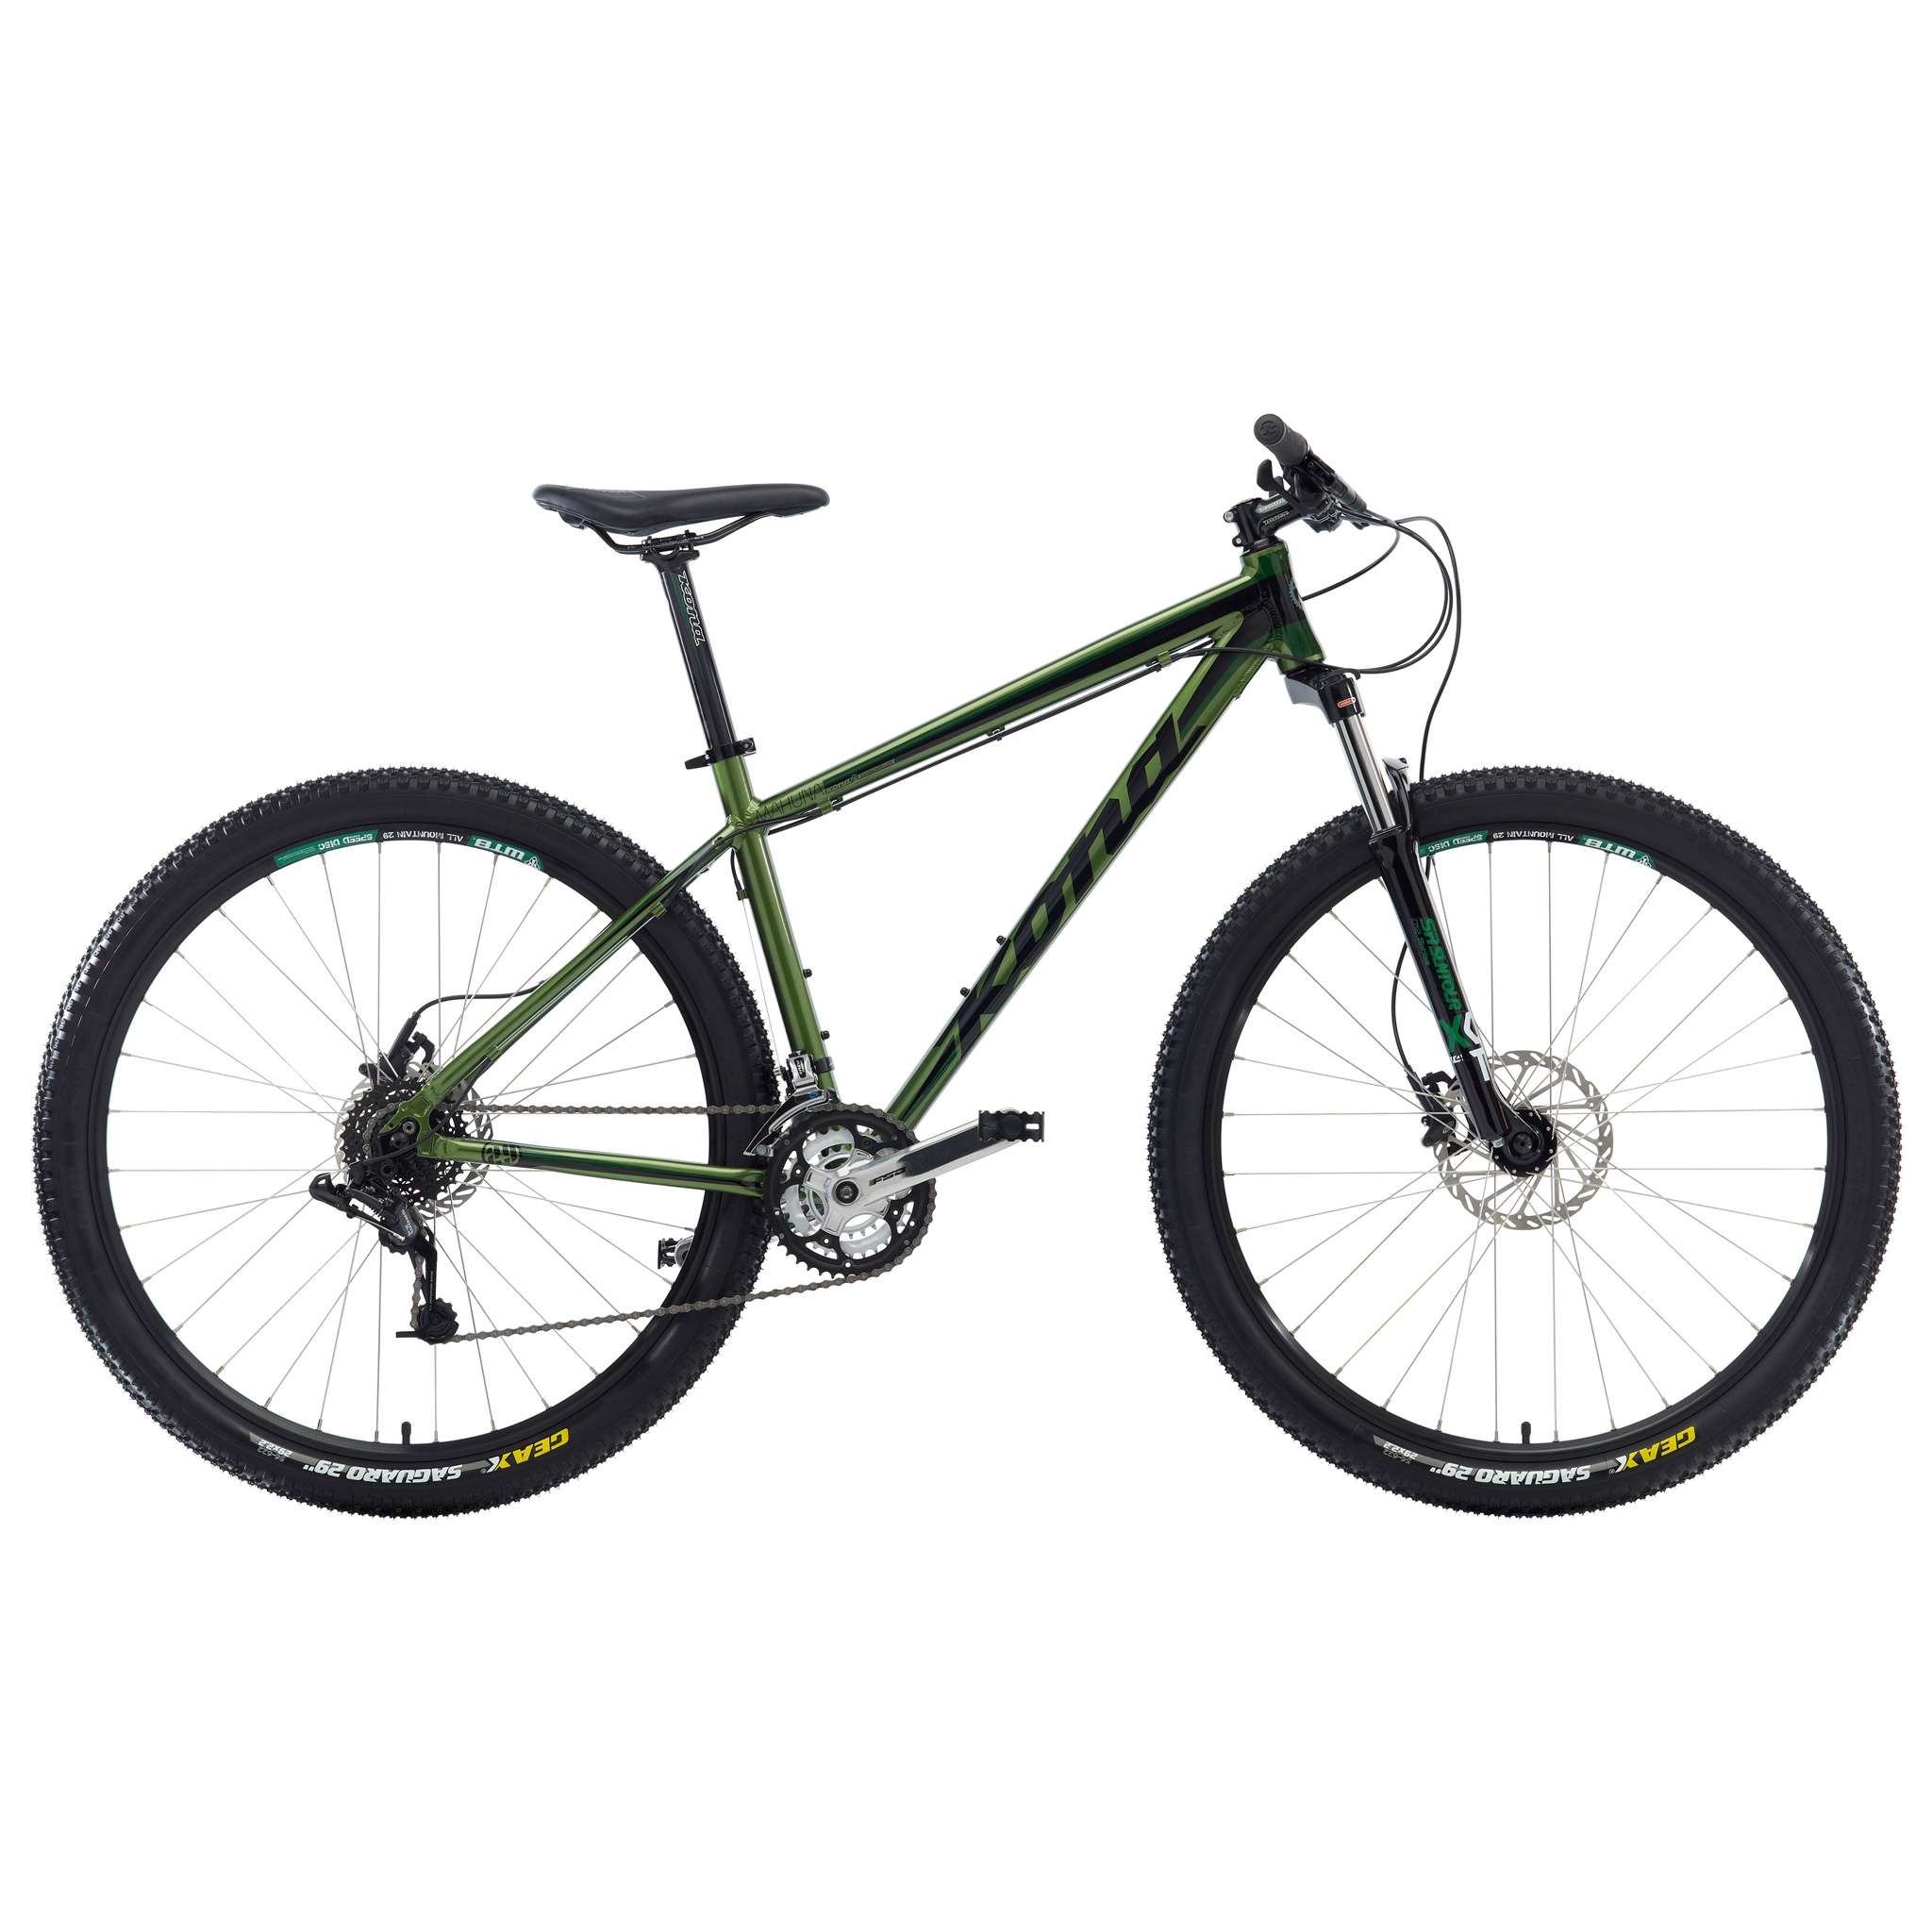 http://www.probikeshop.com/images/products2/282/80586/80586-kona-velo-complet-mahuna-vert.jpg